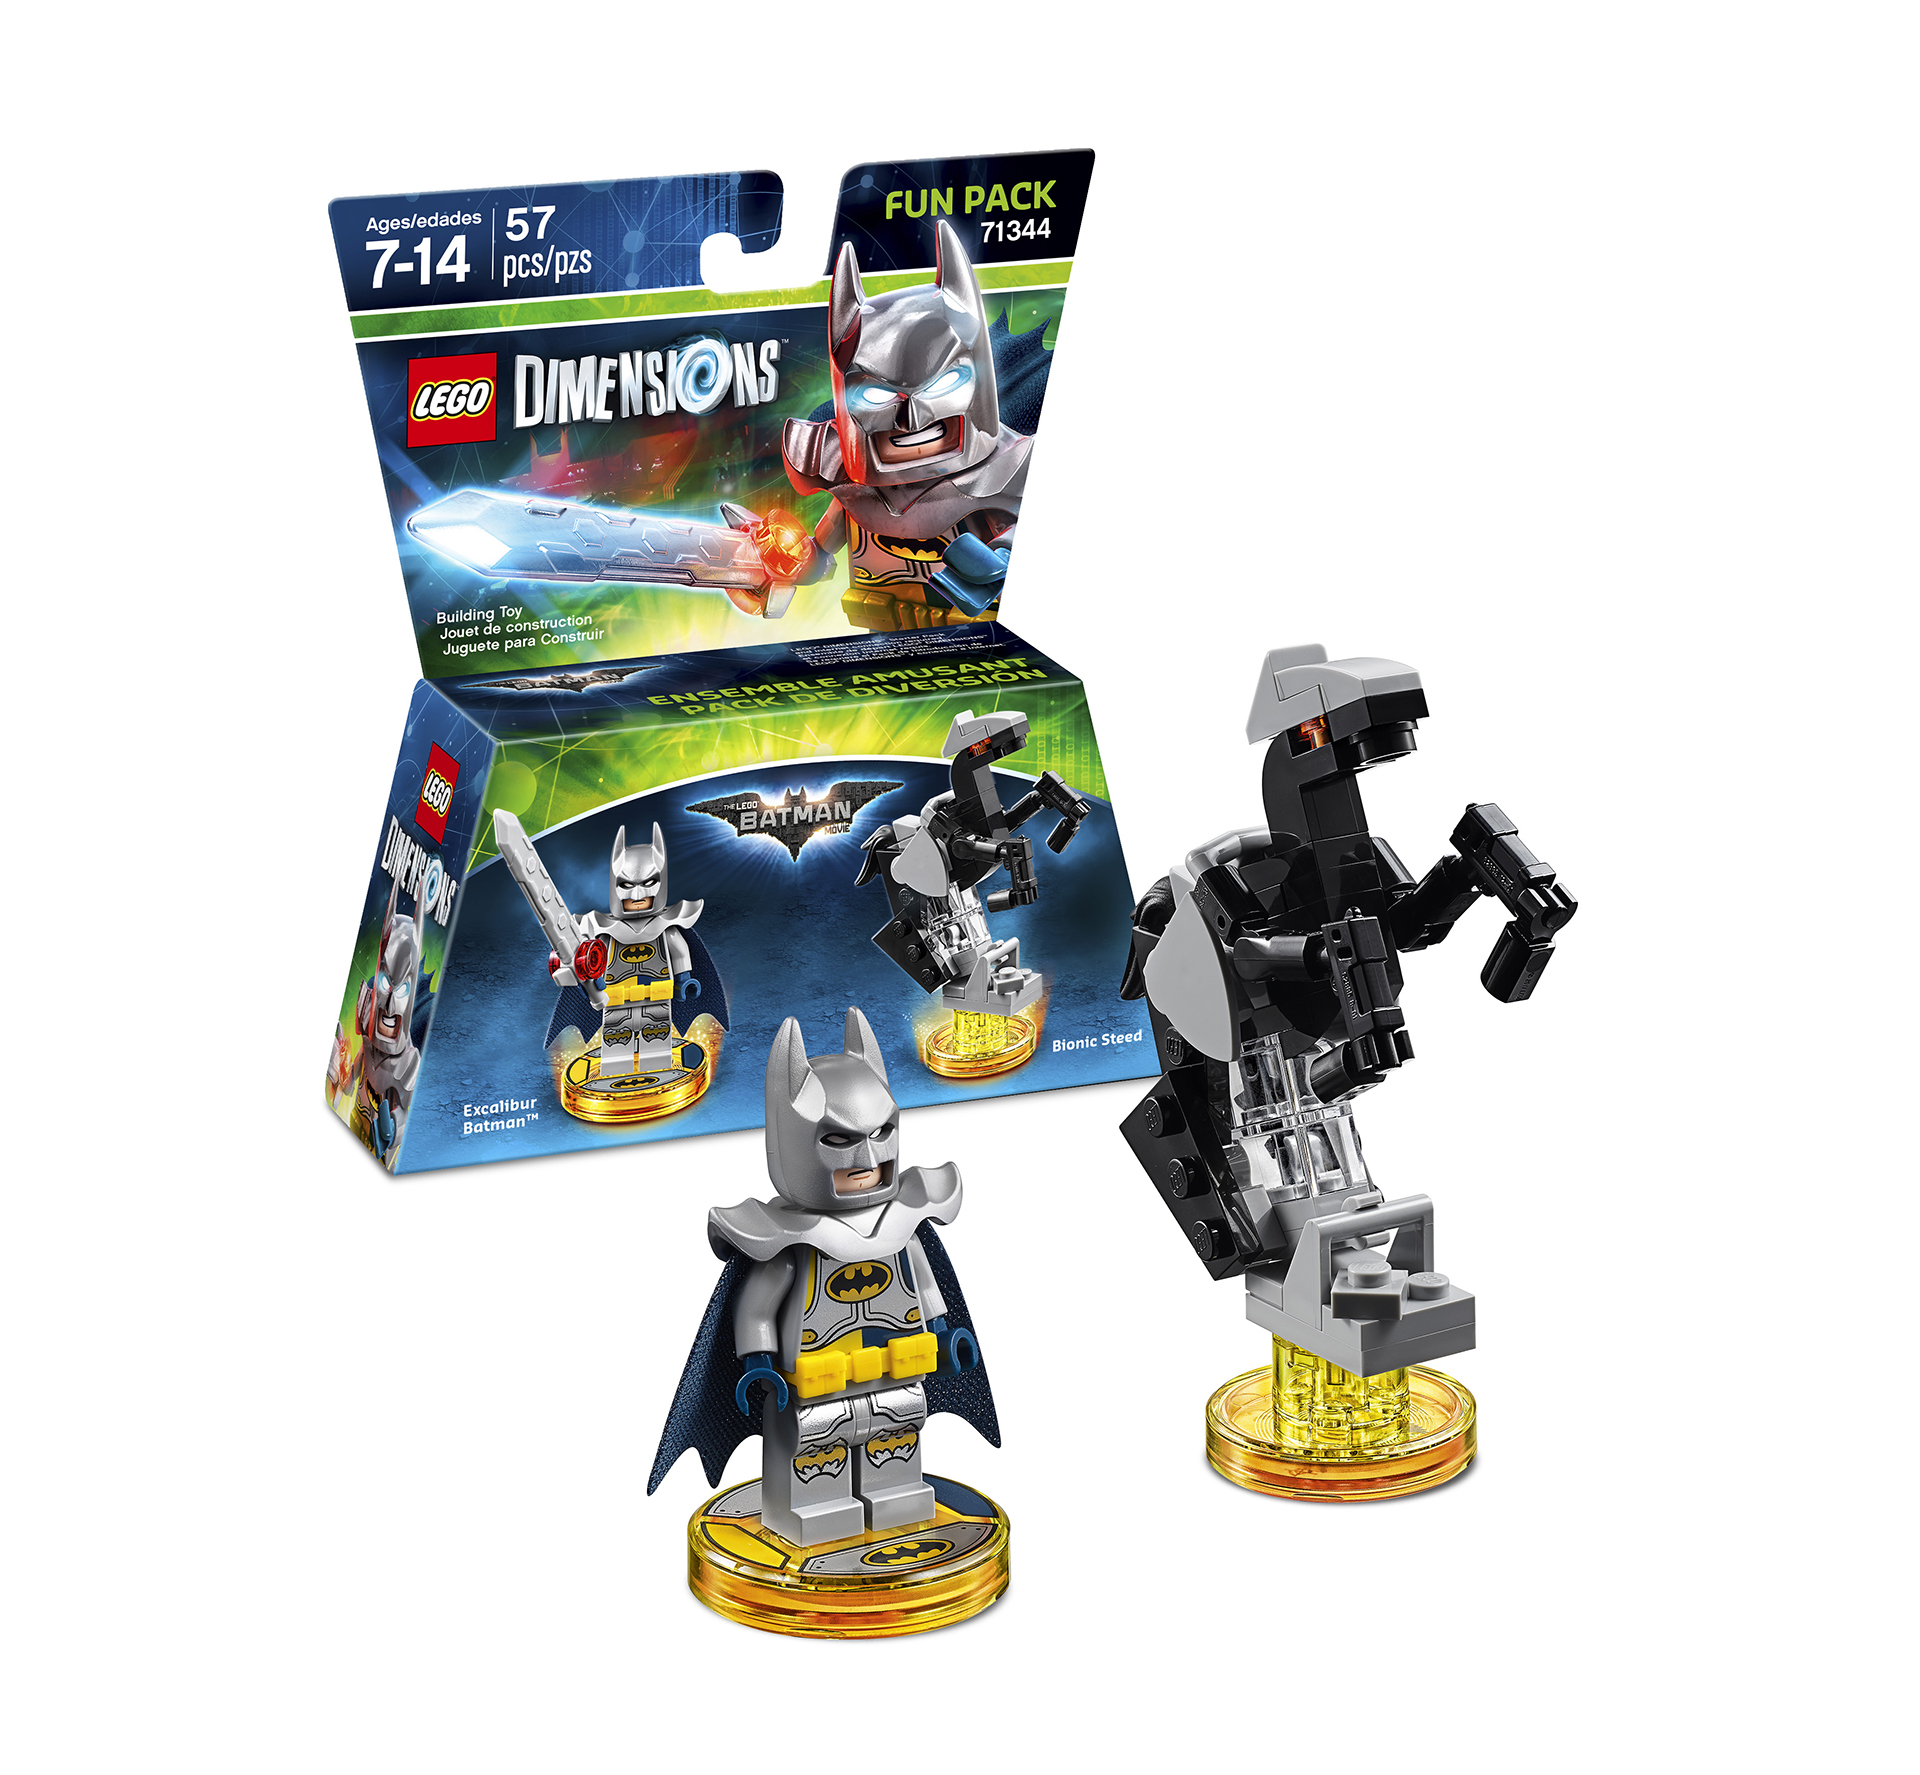 LEGO Dimensions - Excalibur Batman Fun Pack